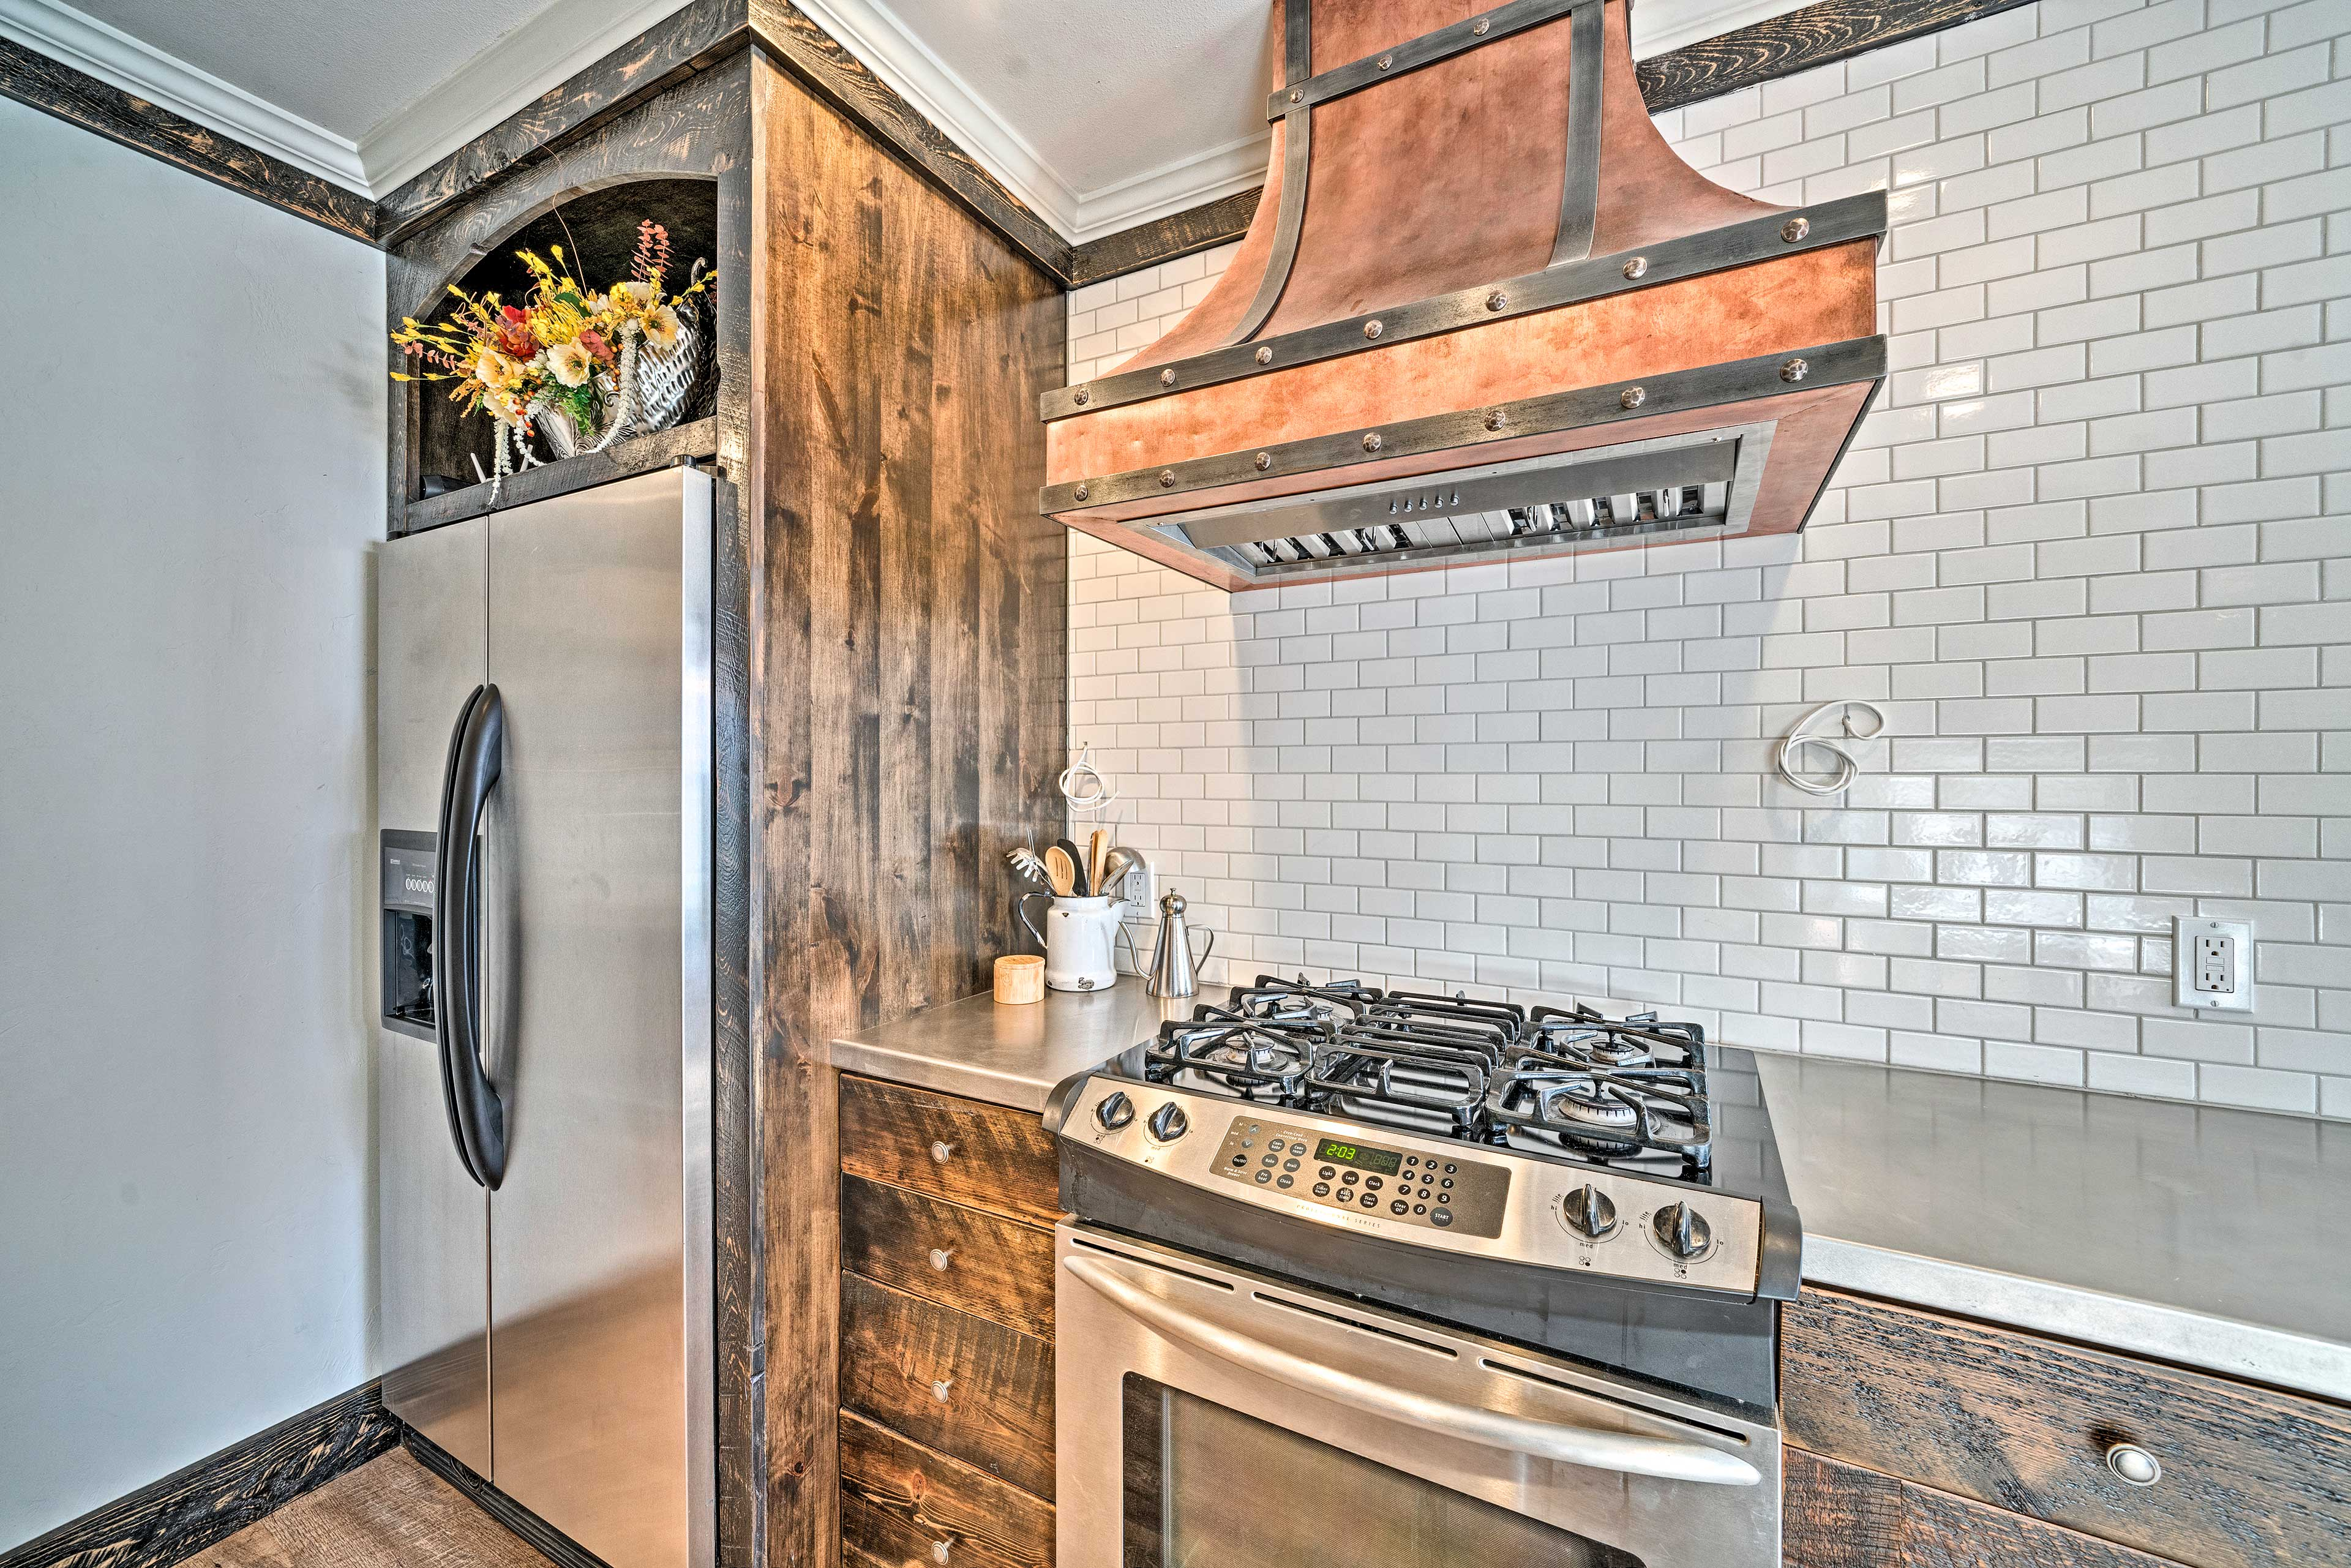 Be the chef you've wanted to be in this gourmet quality kitchen.